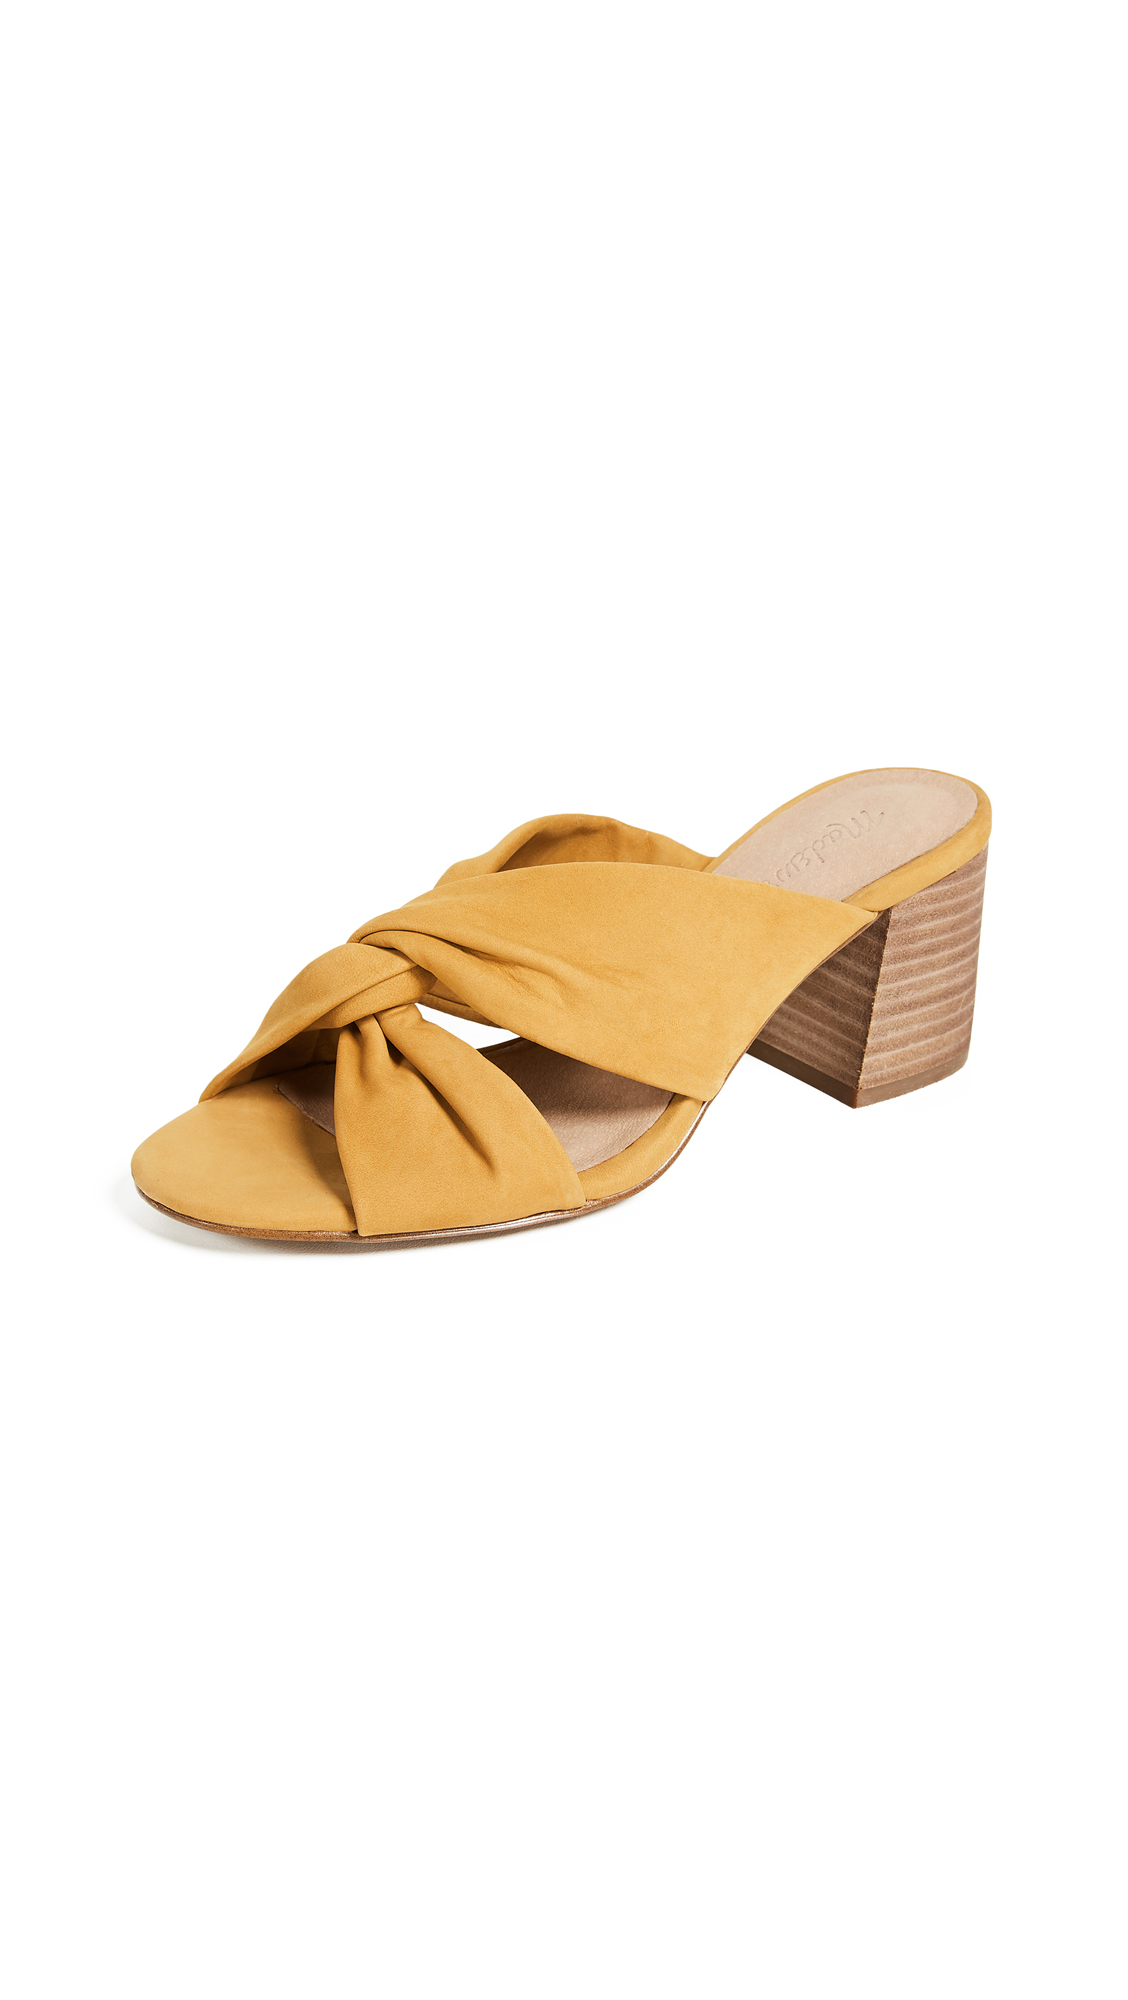 Madewell The Sari Crisscross Sandals - Cider